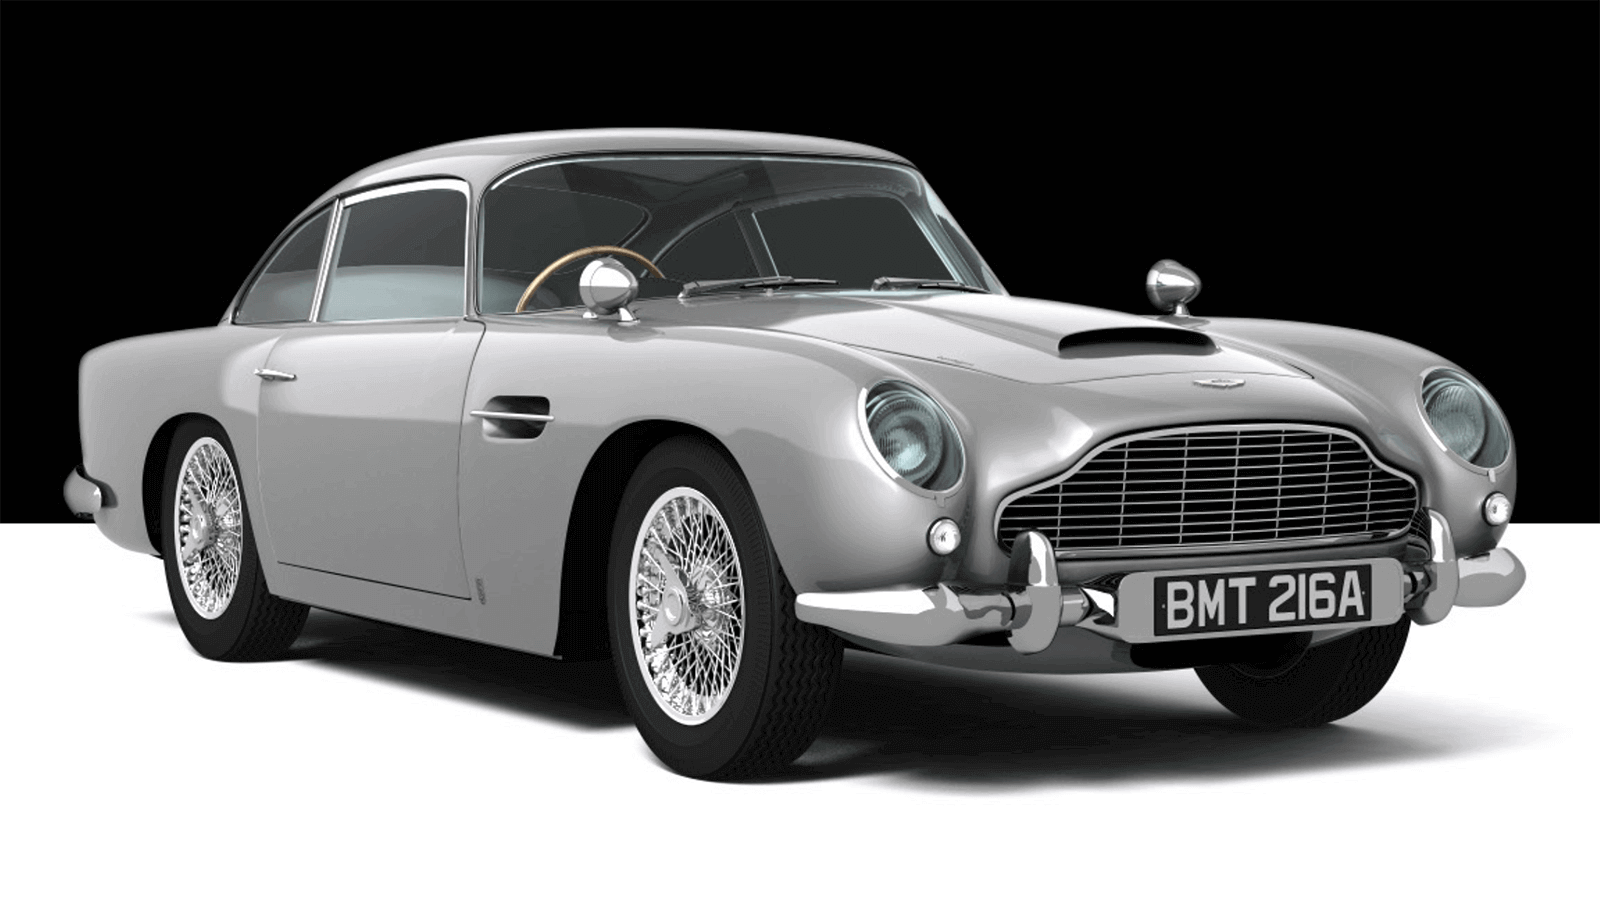 3D Printed Aston Martin DB5 Replica costs £28,000 (But has Working Machine Guns) | All3DP